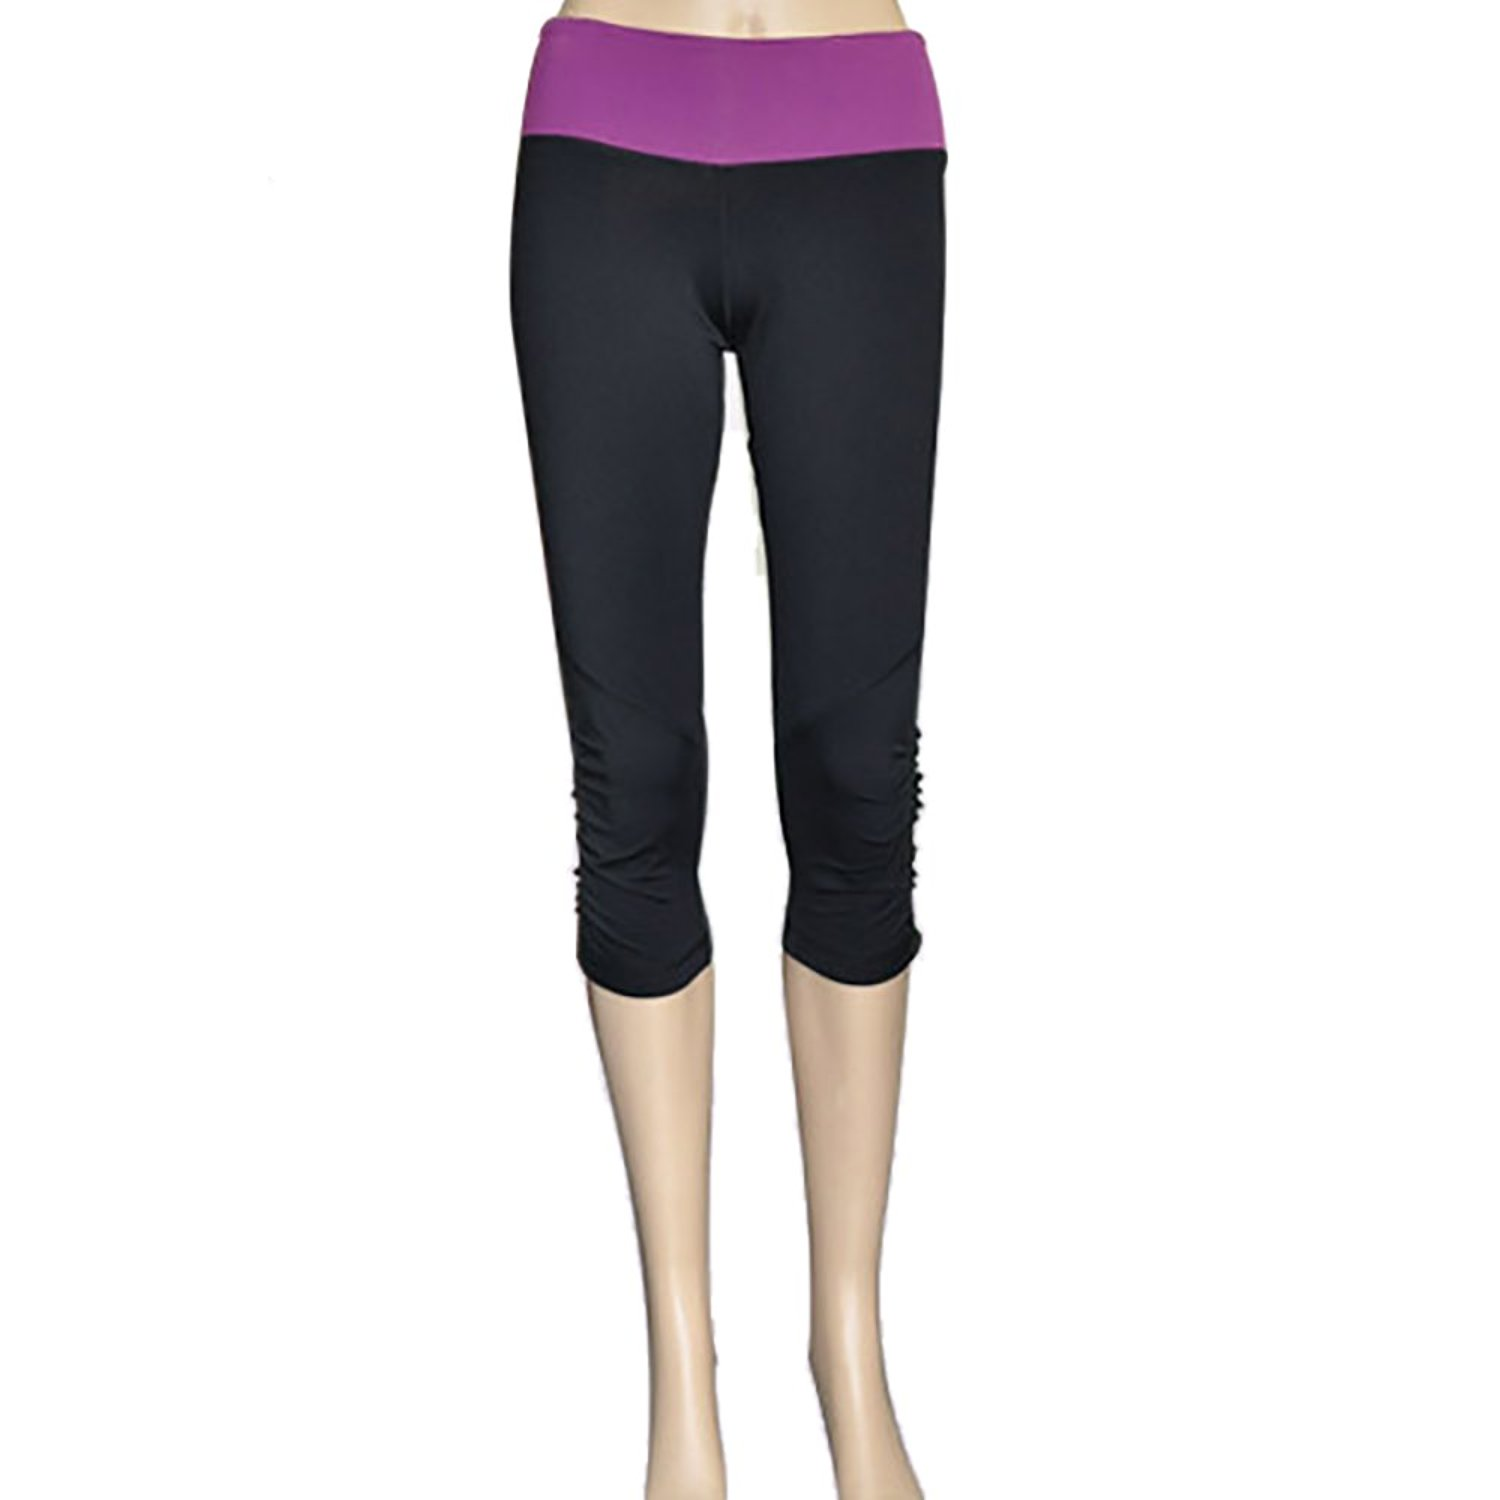 19e37e6d47f Get Quotations · Yoyoga Women s back zipper pocket cropped yoga pants wth  ruffle bottom